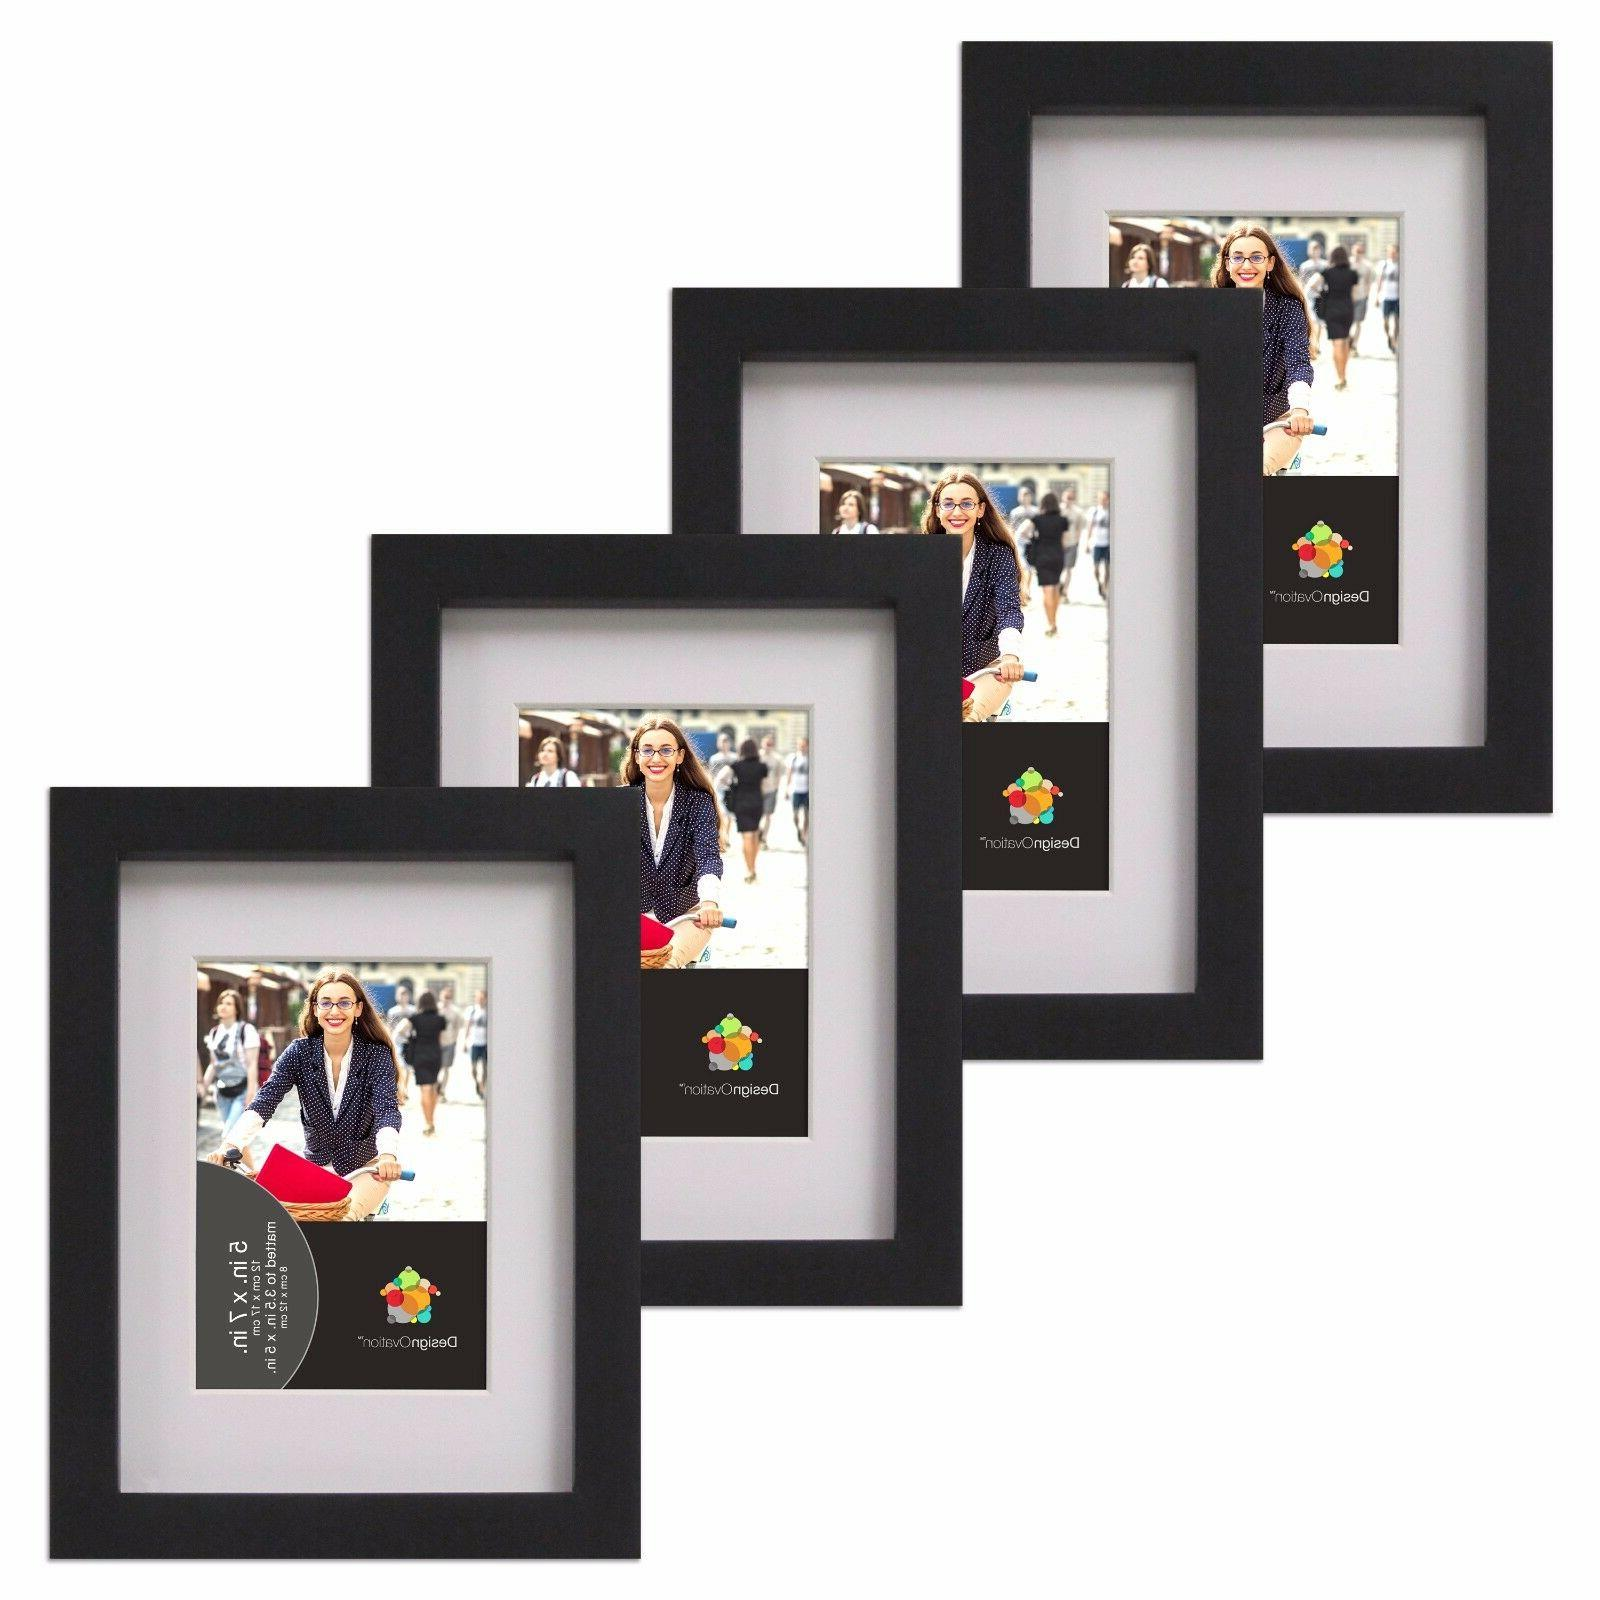 Gallery 5x7 matted to 3.5x5 Black Wood Picture Frame, Set of